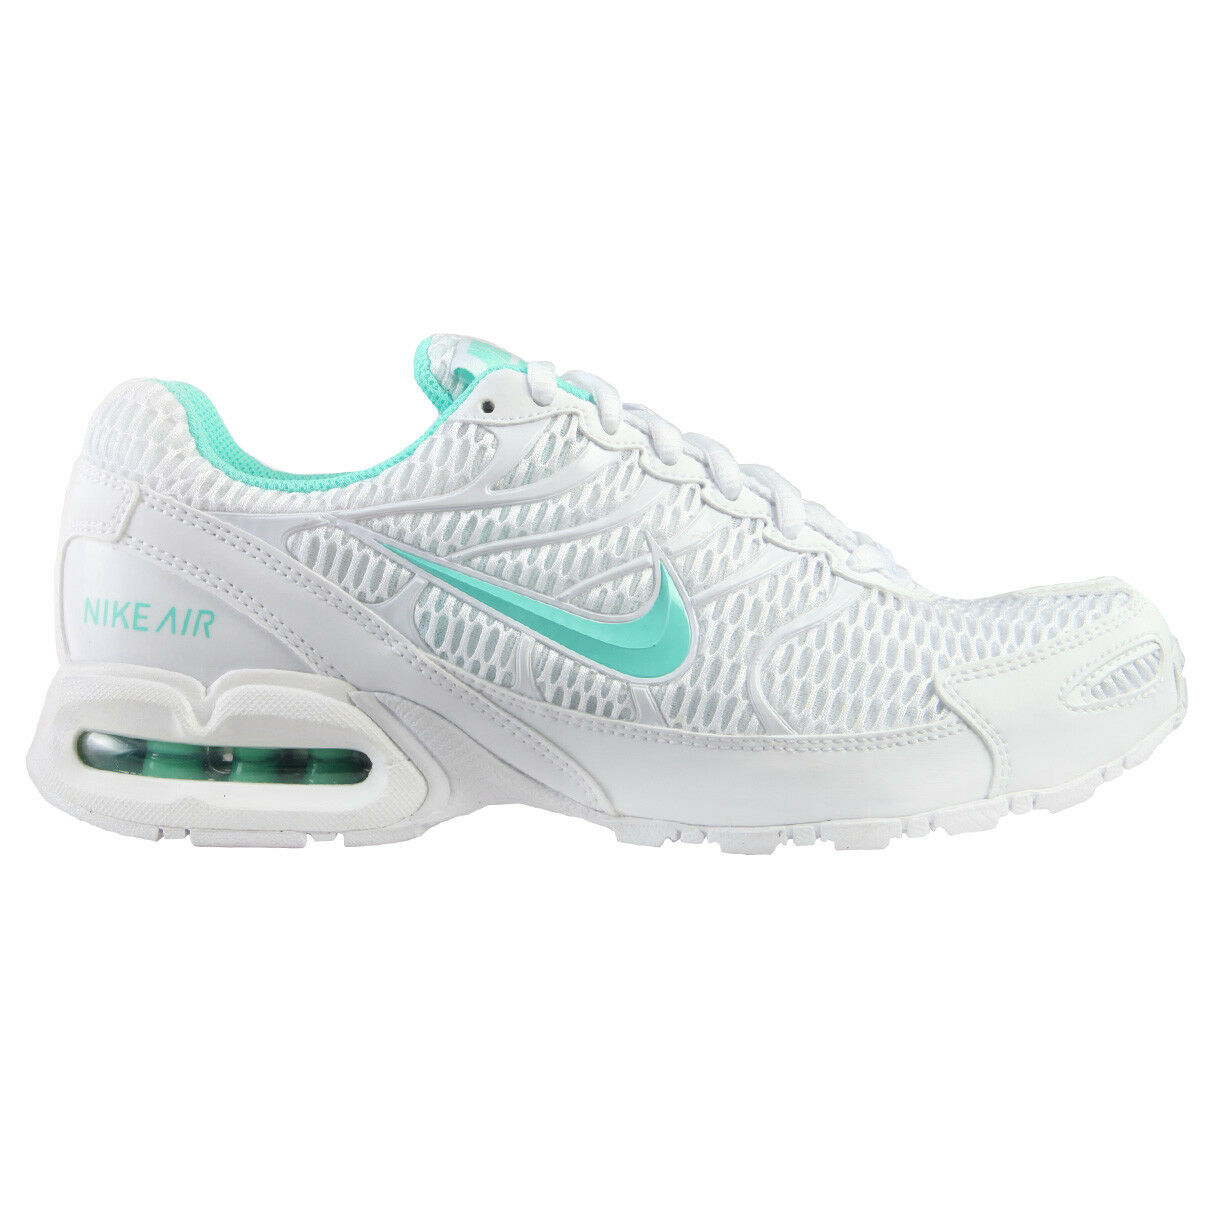 Nike Turquoise Air Max Torch 4 Womens 343851-100 White Turquoise Nike Running Shoes Size 7 79aa23